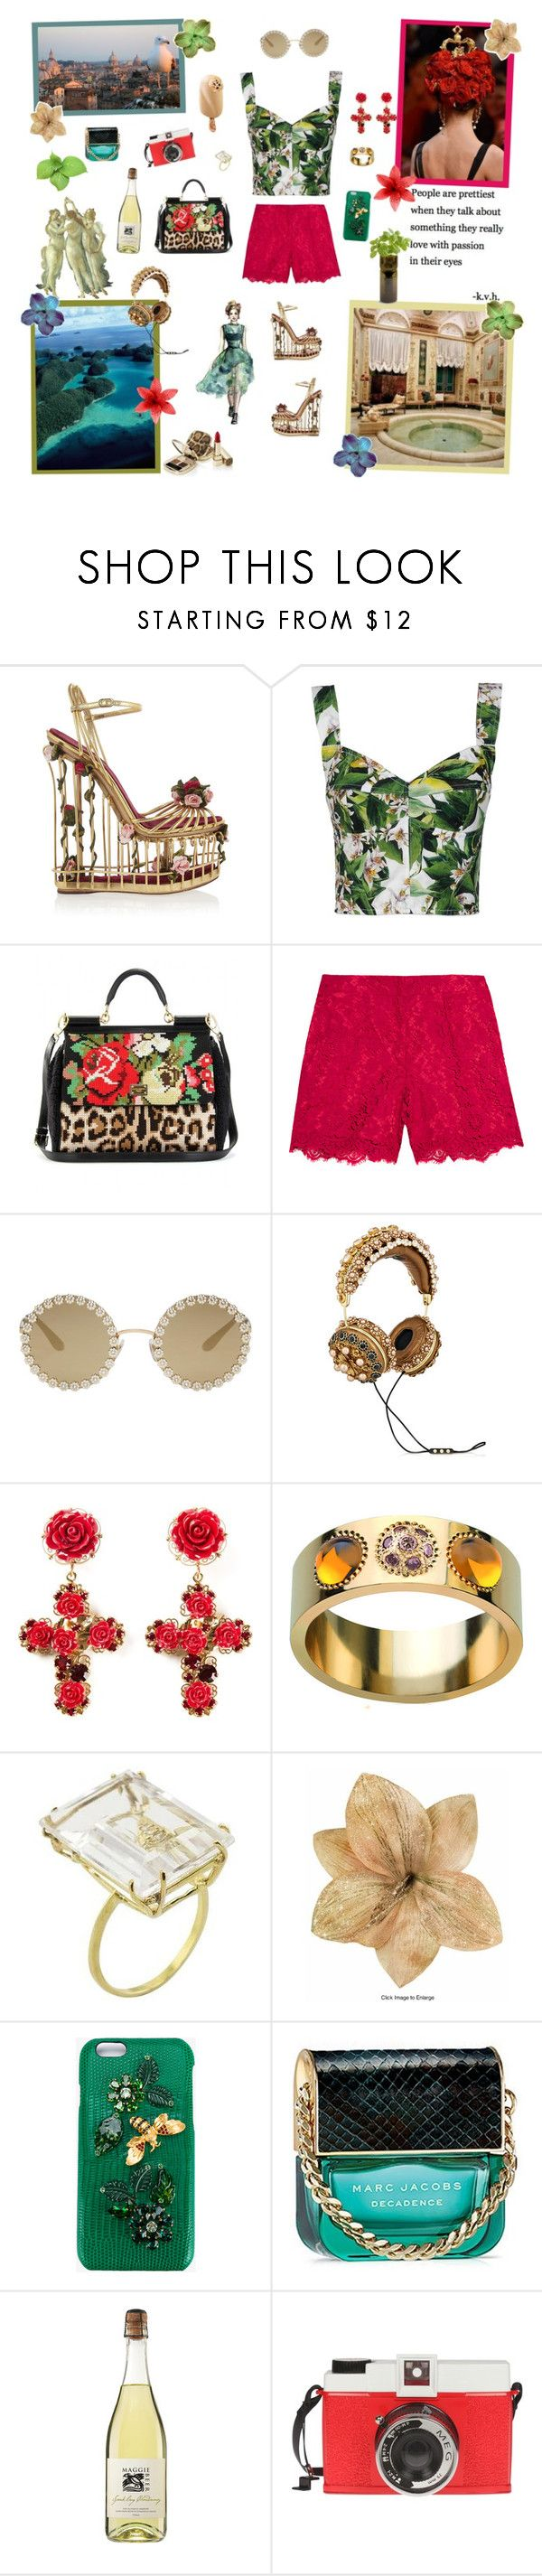 """""""5/10 Runway"""" by not-the-average-girl ❤ liked on Polyvore featuring Dolce&Gabbana, Lalique, NOVICA, Marc Jacobs, Edition and Potting Shed Creations"""